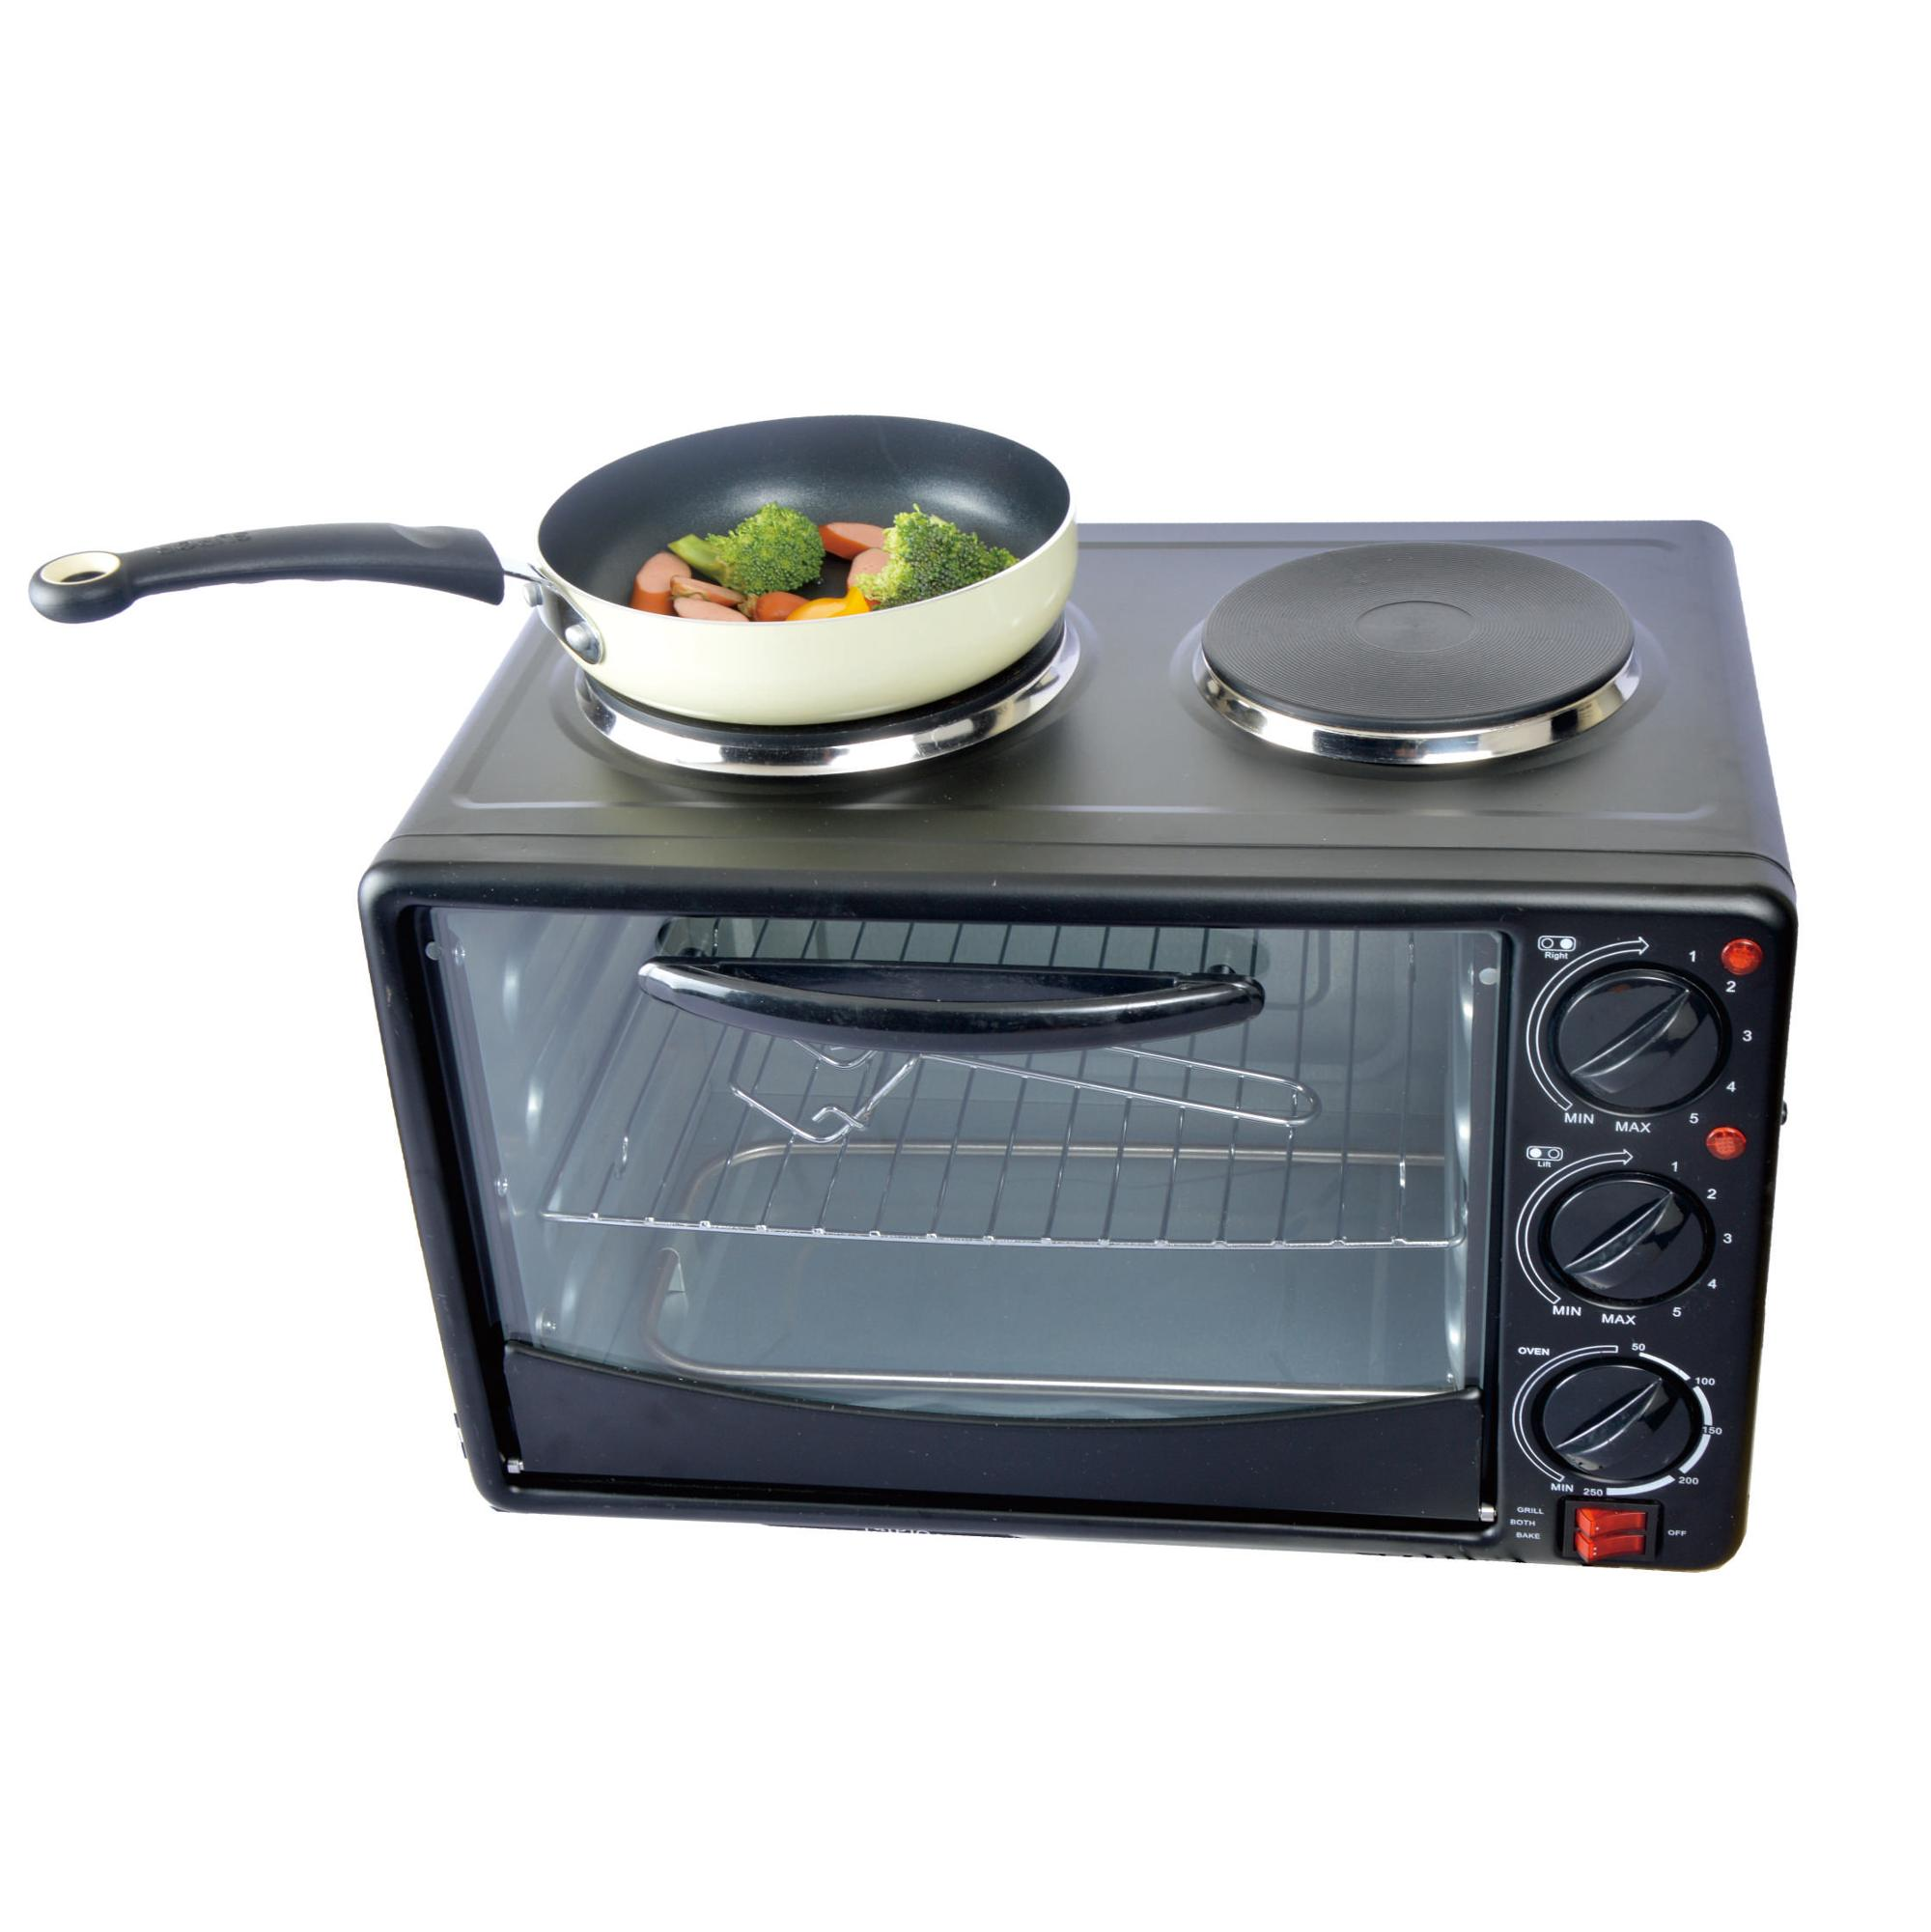 Electric Oven With Double Hot Plates Electric Toaster Oven Hot plate Electric Oven Hotplate